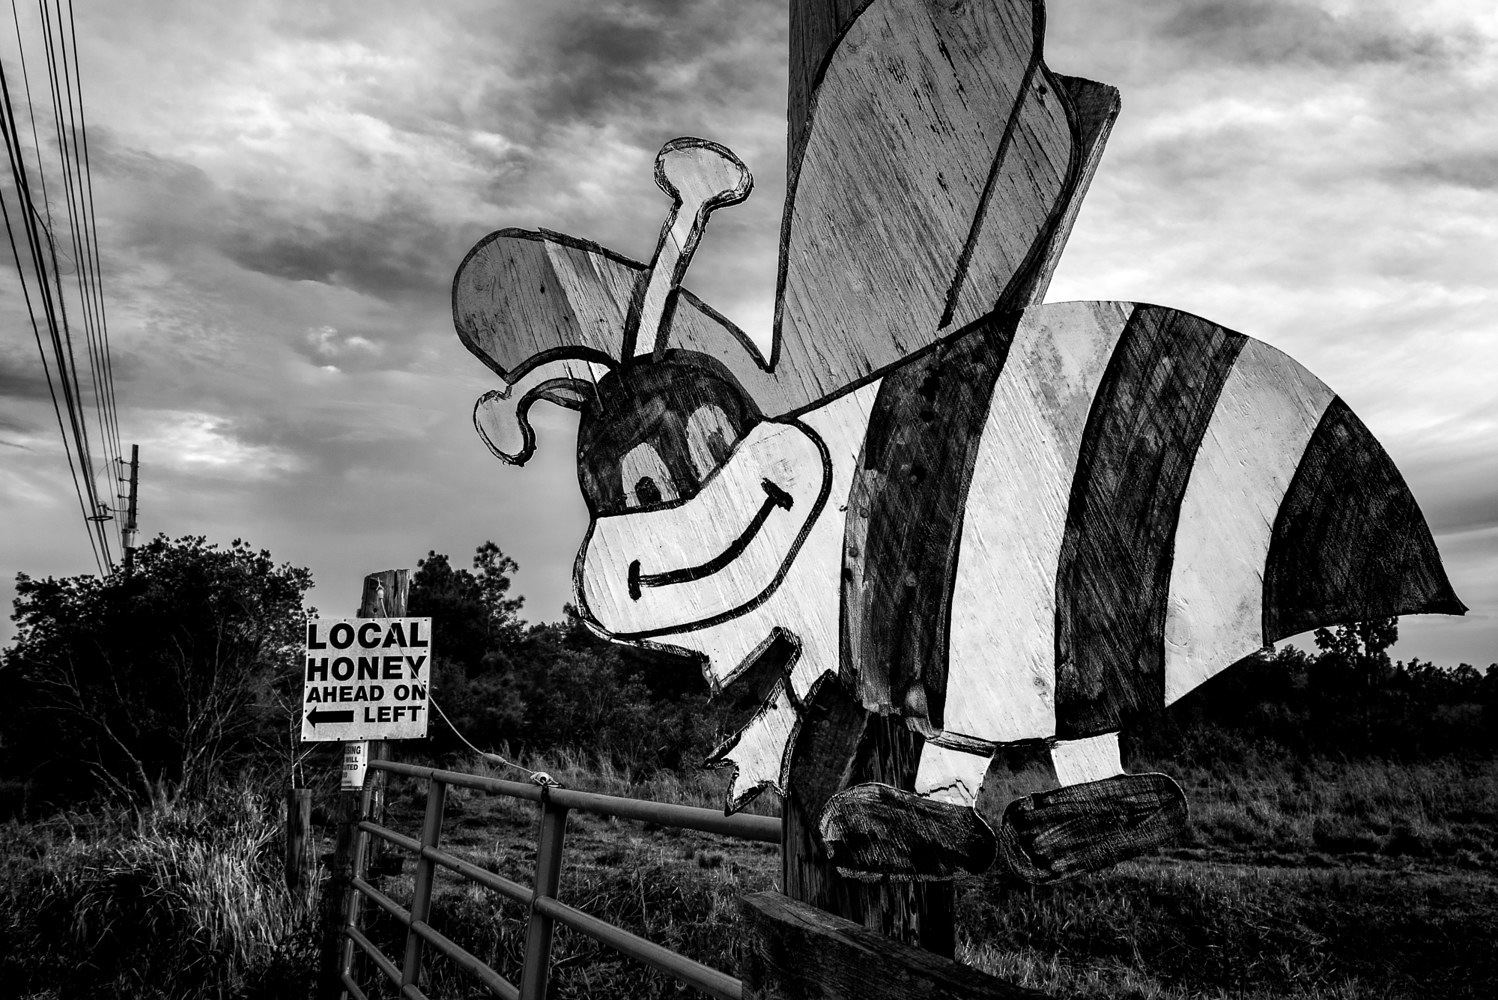 Honey Bee _ SR 520 (PL46_6842BW) by Gary Jones